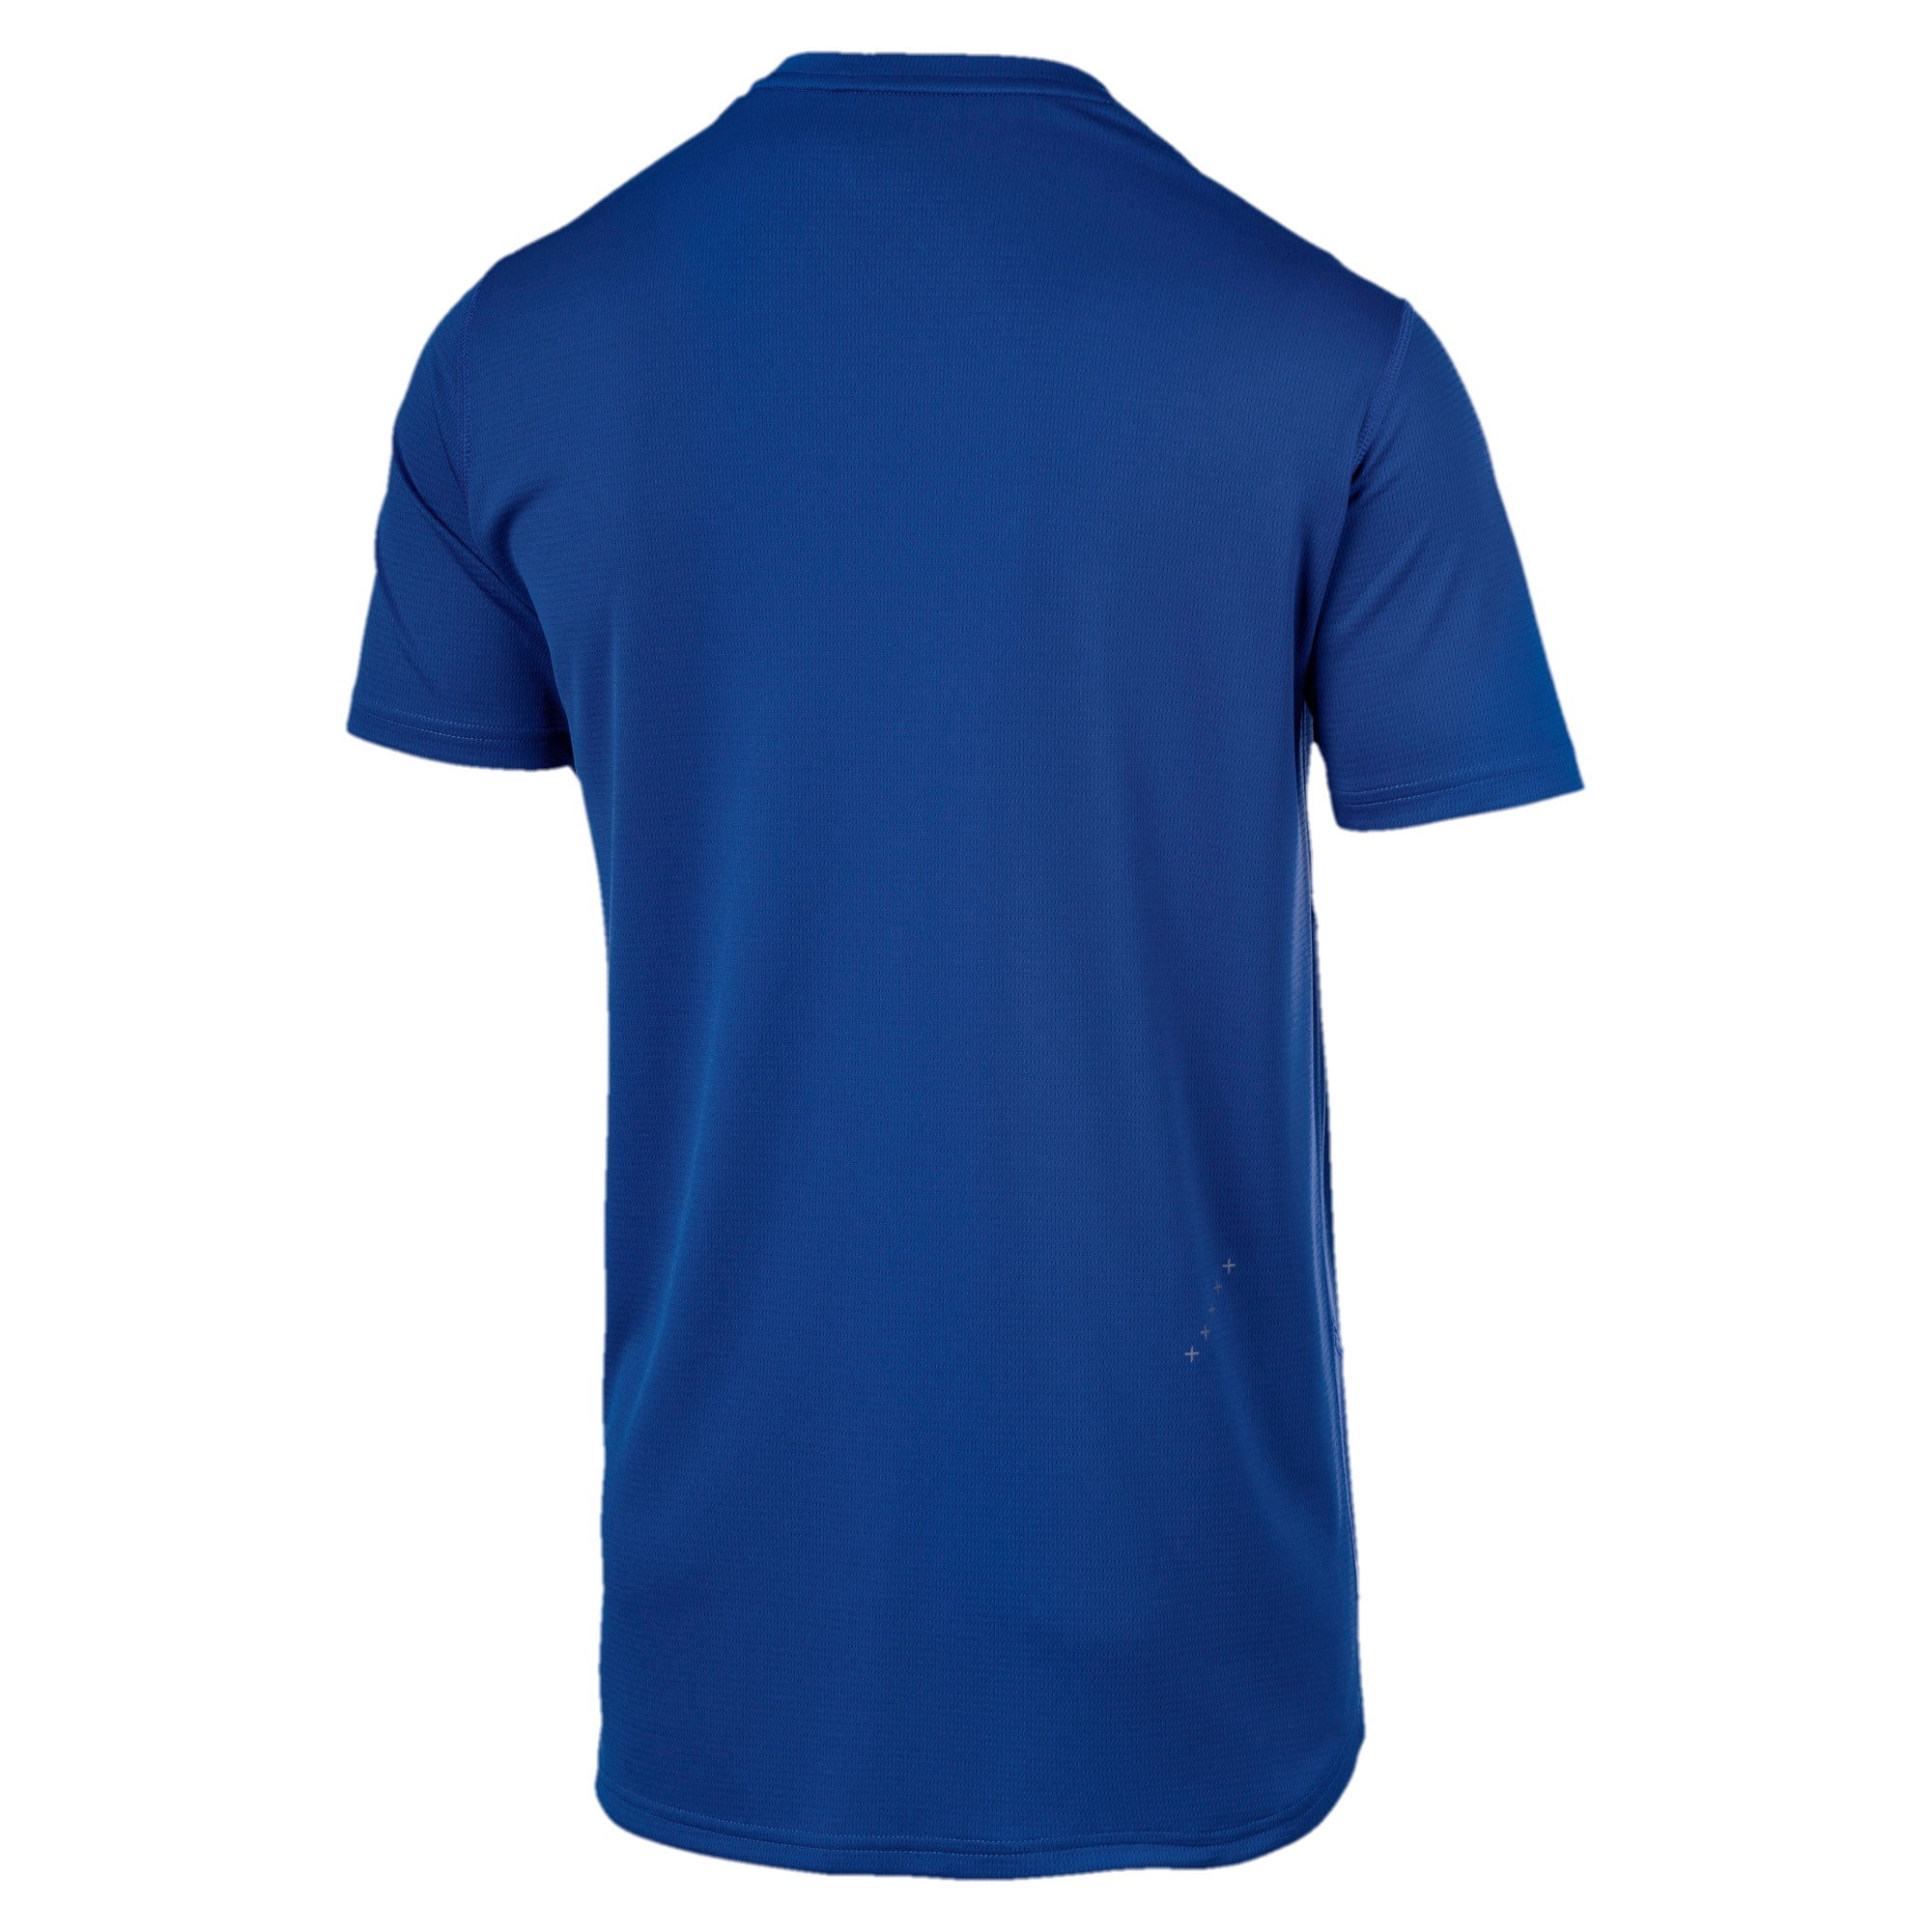 IGNITE hardloopshirt voor mannen, Puma Royal, large